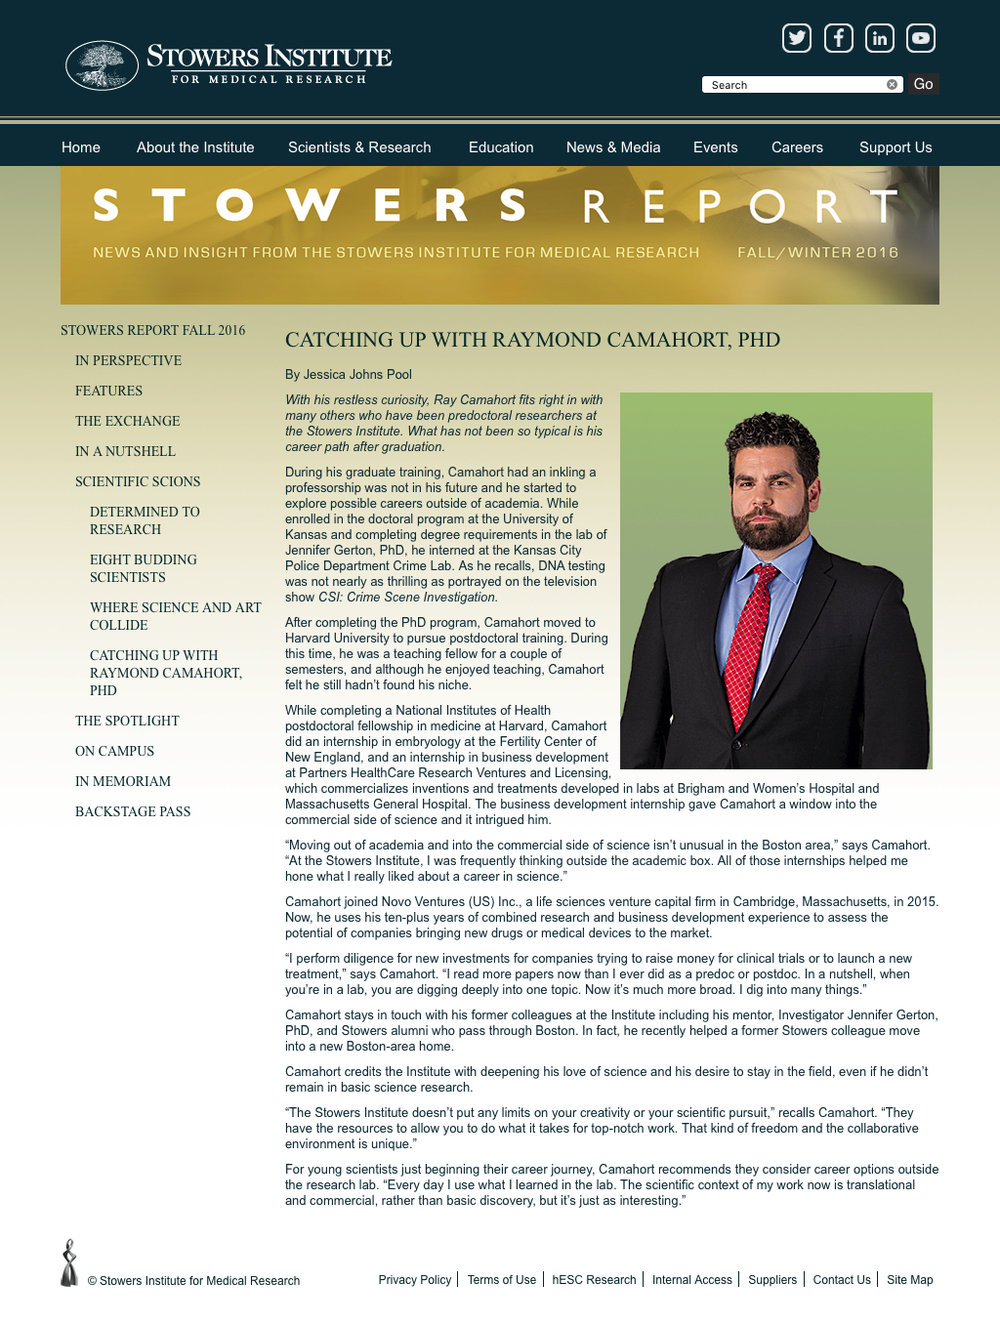 Stowers Institue Scientist Profile 2018